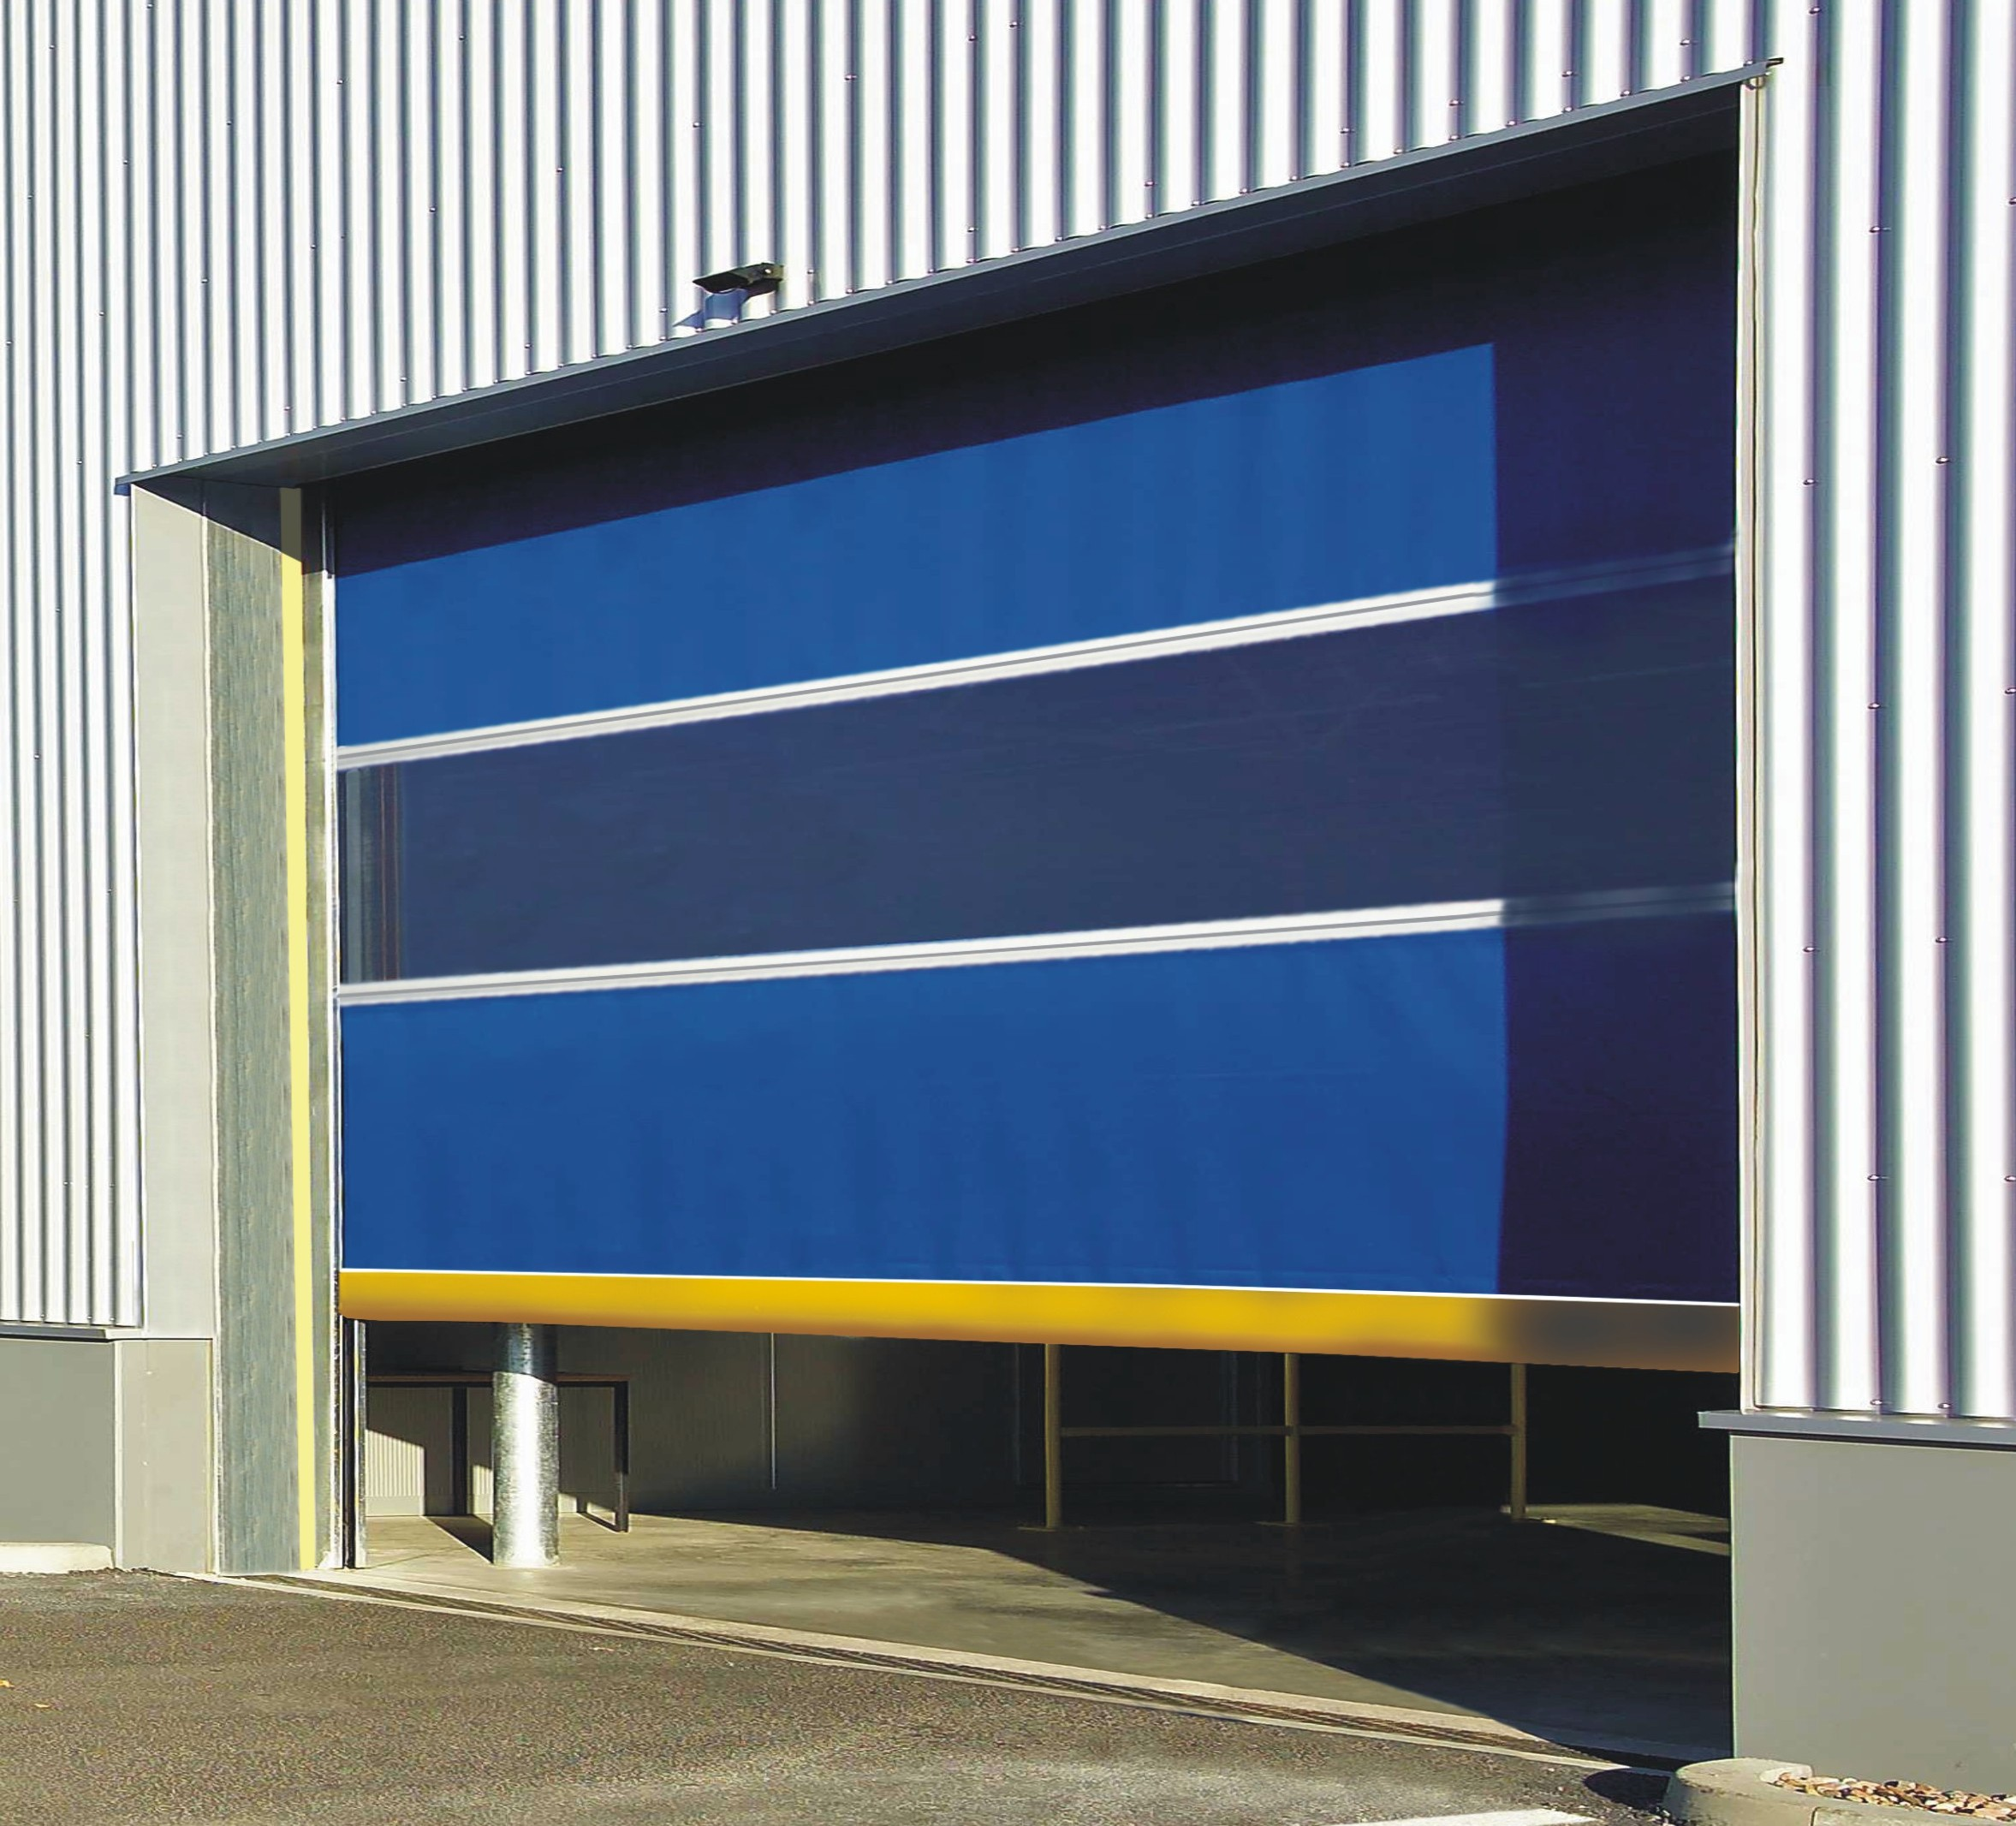 Industrial Roller Shutter Doors Thailand & High Speed Shutters u2013 KSS Thailand